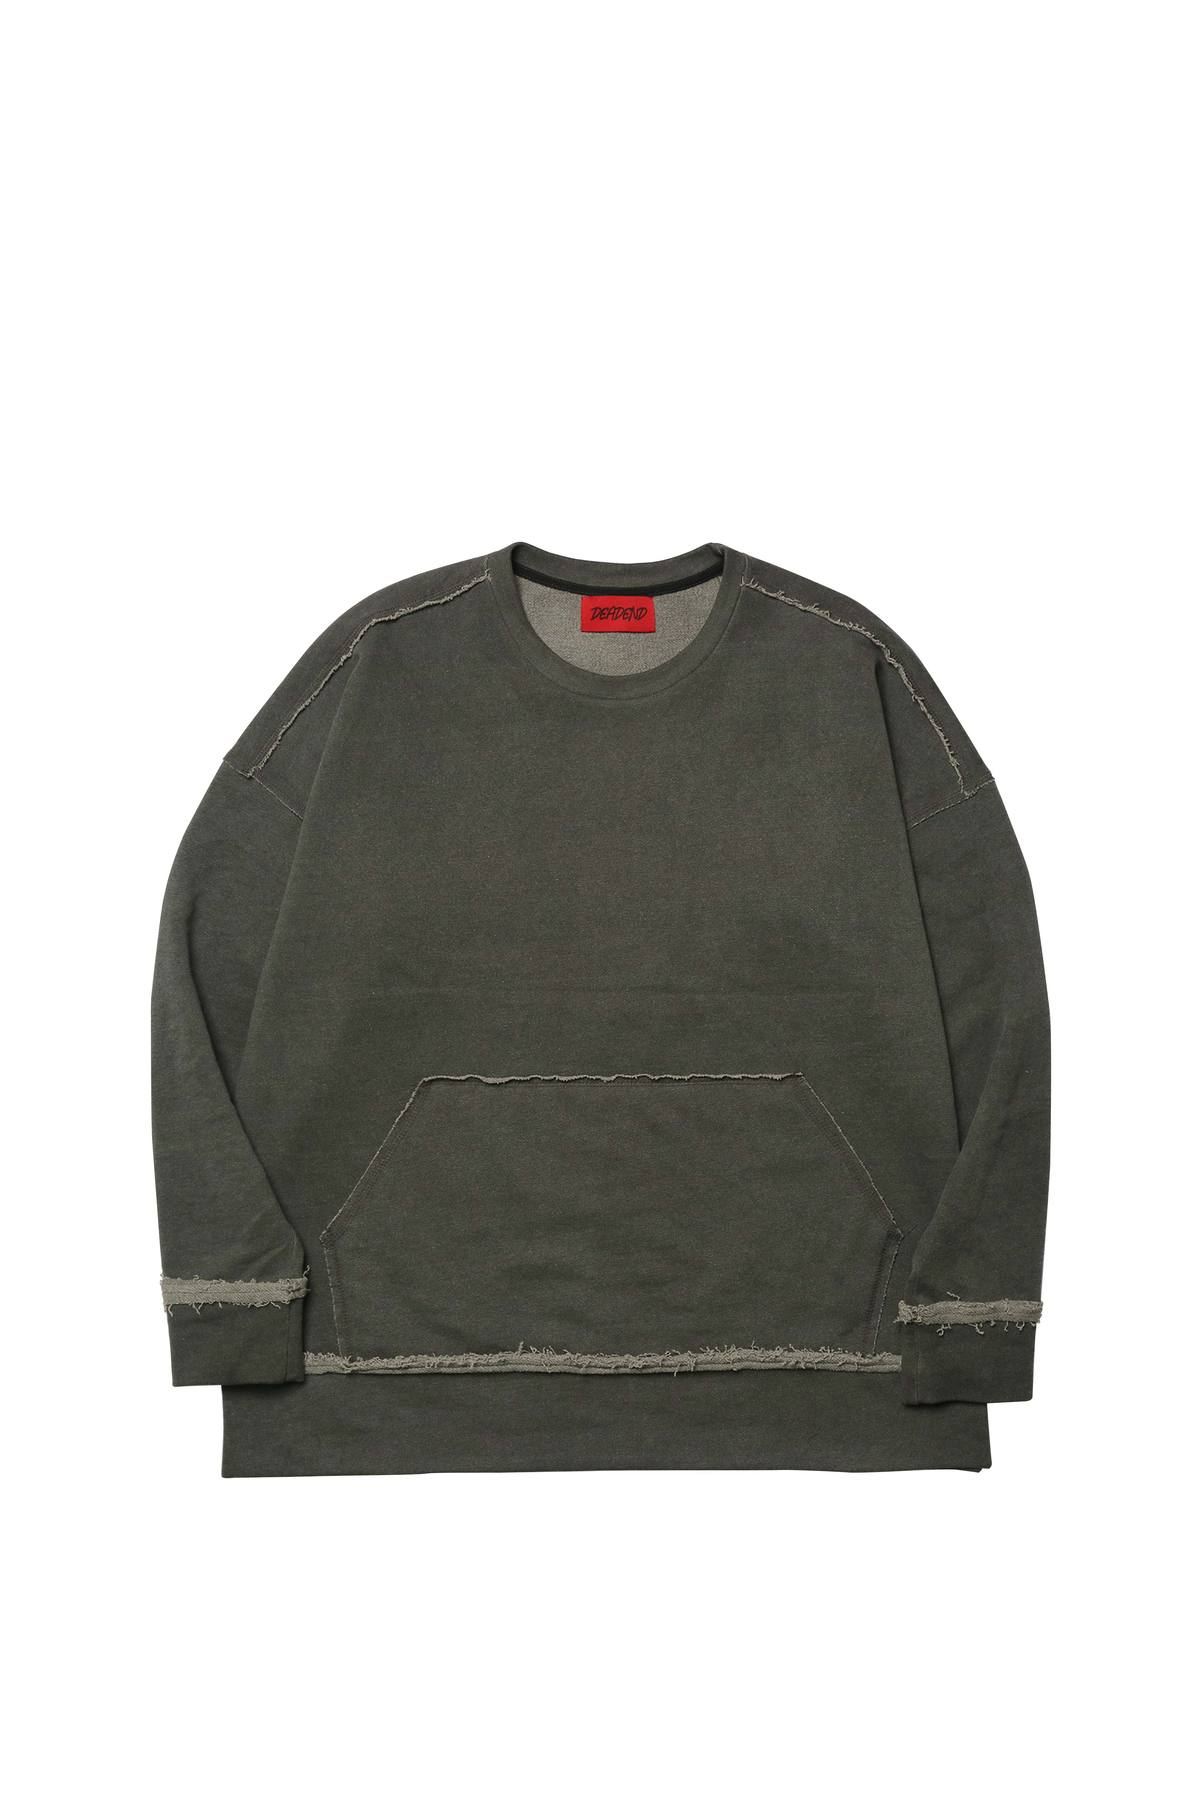 CHARCOAL RAW EDGE SWEAT SHIRTS